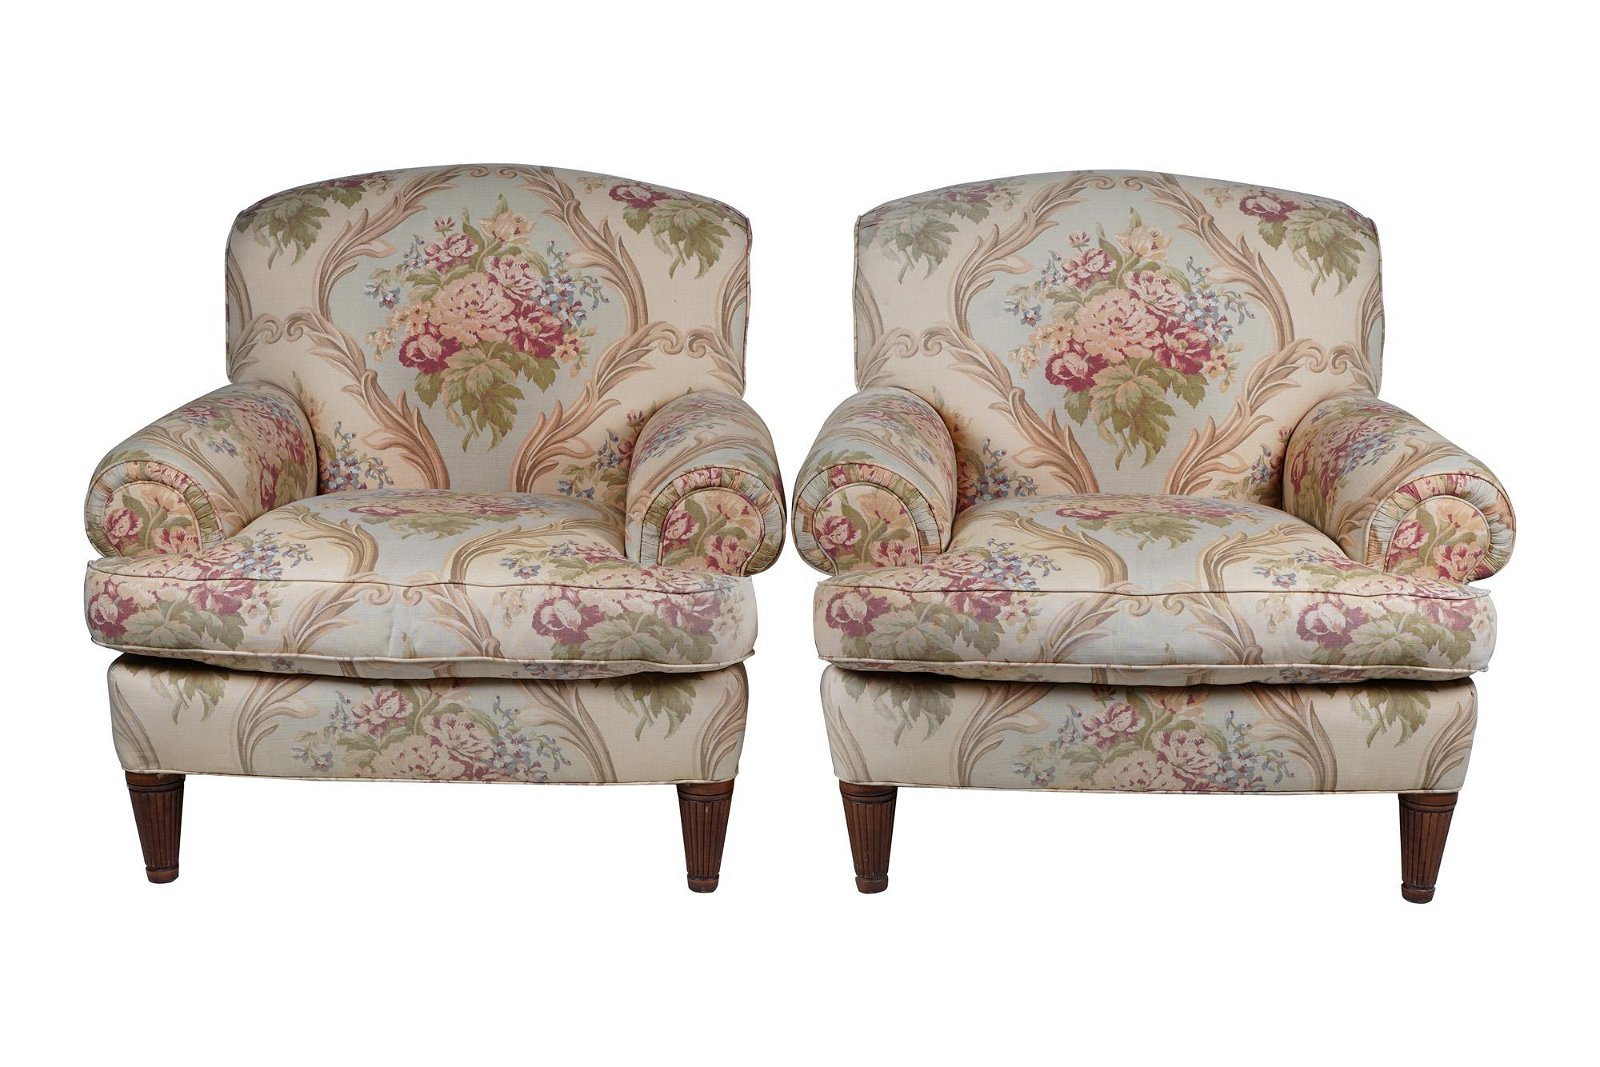 PAIR OF RALPH LAUREN UPHOLSTERED CLUB CHAIRS